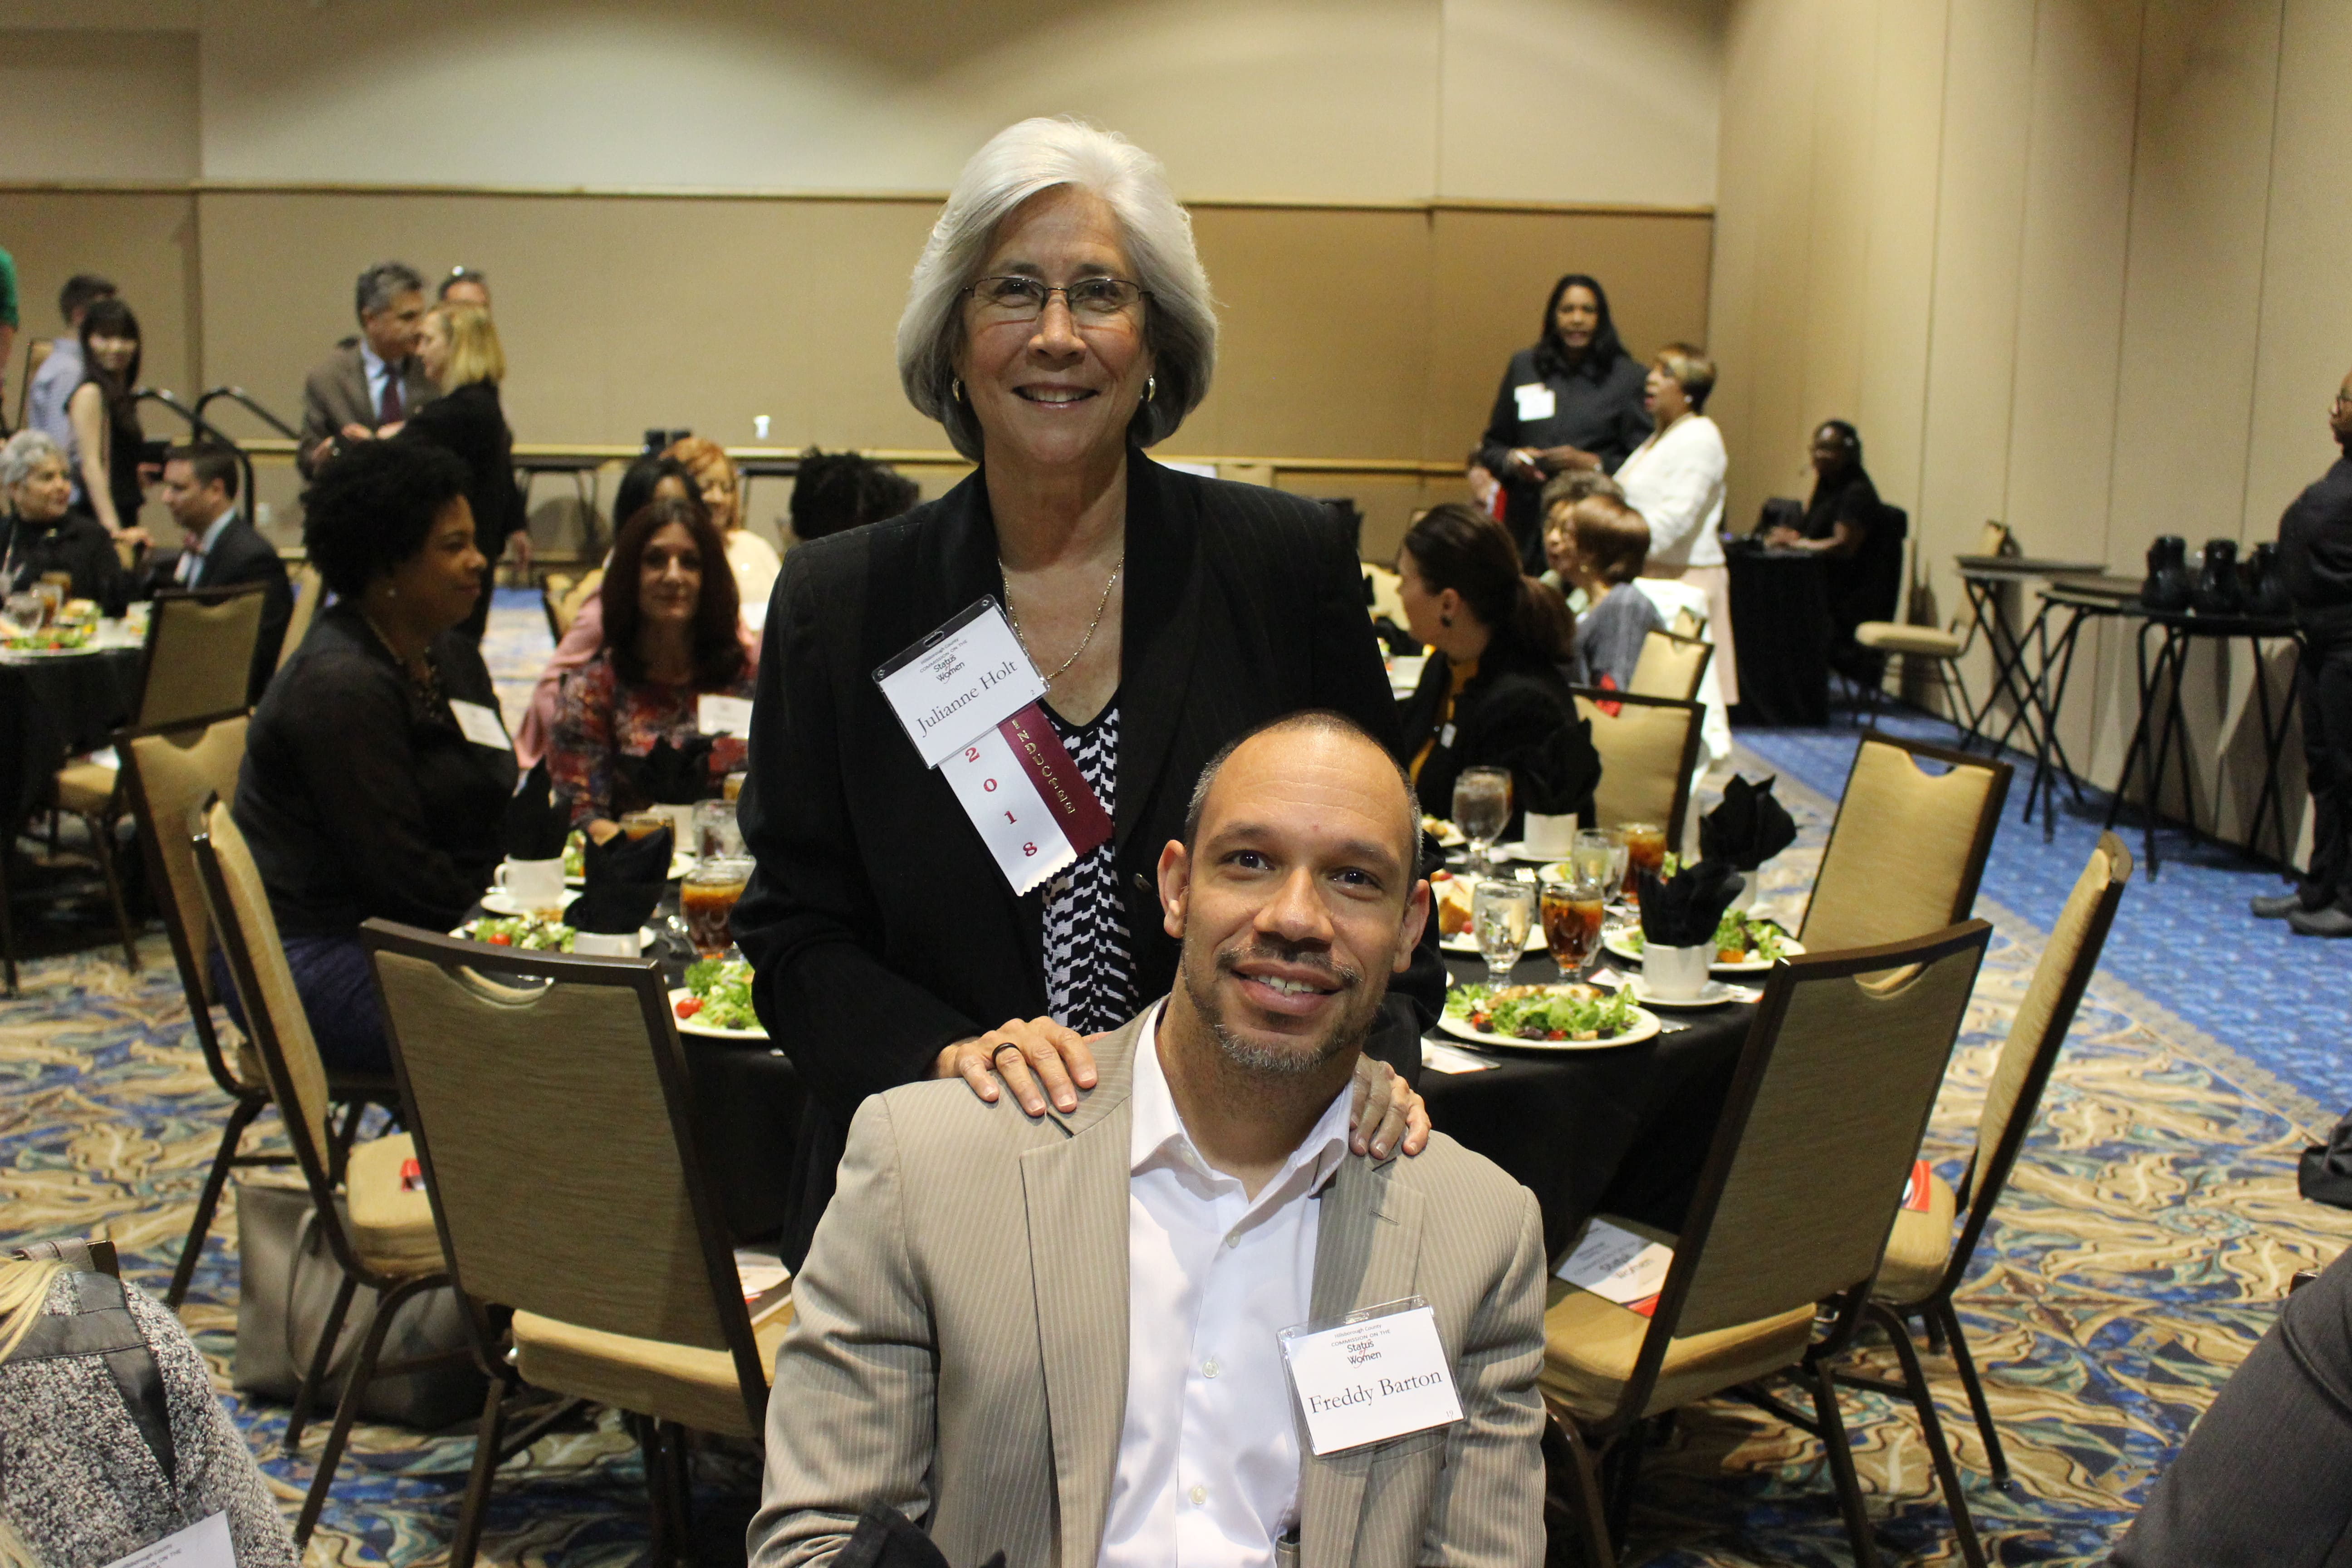 Julie Holt and Freddy Barton, Executive Director of Safe & Sound, at the Women's Hall of Fame luncheon honoring Ms. Holt                     and her contributions to improving the lives of women and residents of Tampa Bay